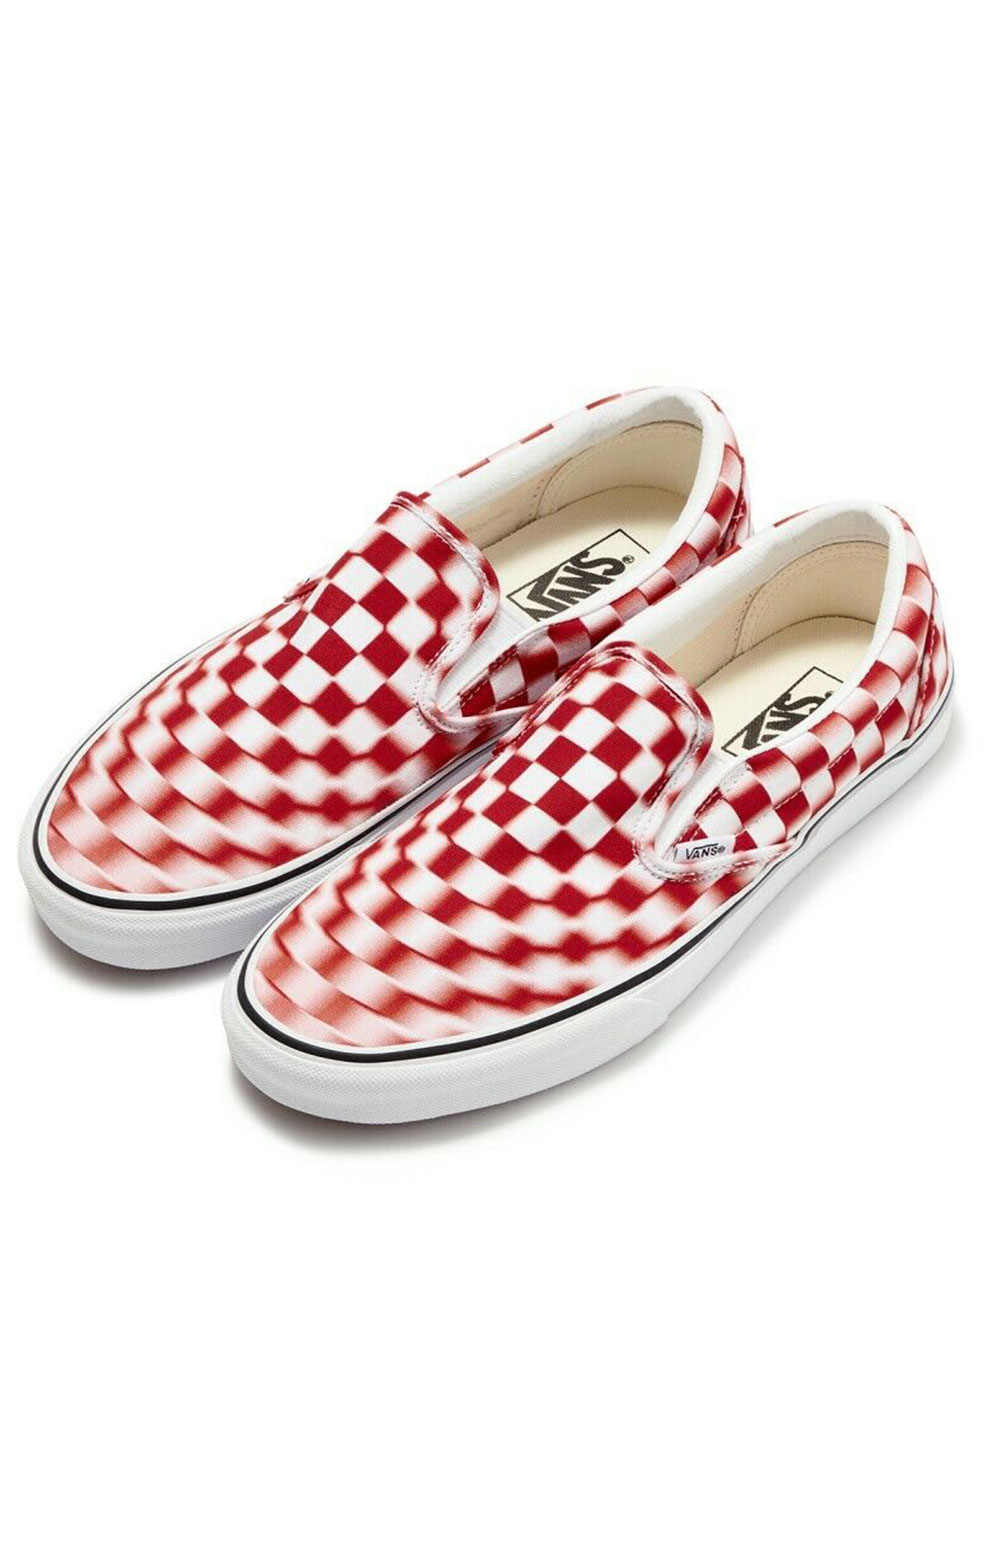 (U3817Z) Blur Check Classic Slip-On Shoe - Ture White/Red 3